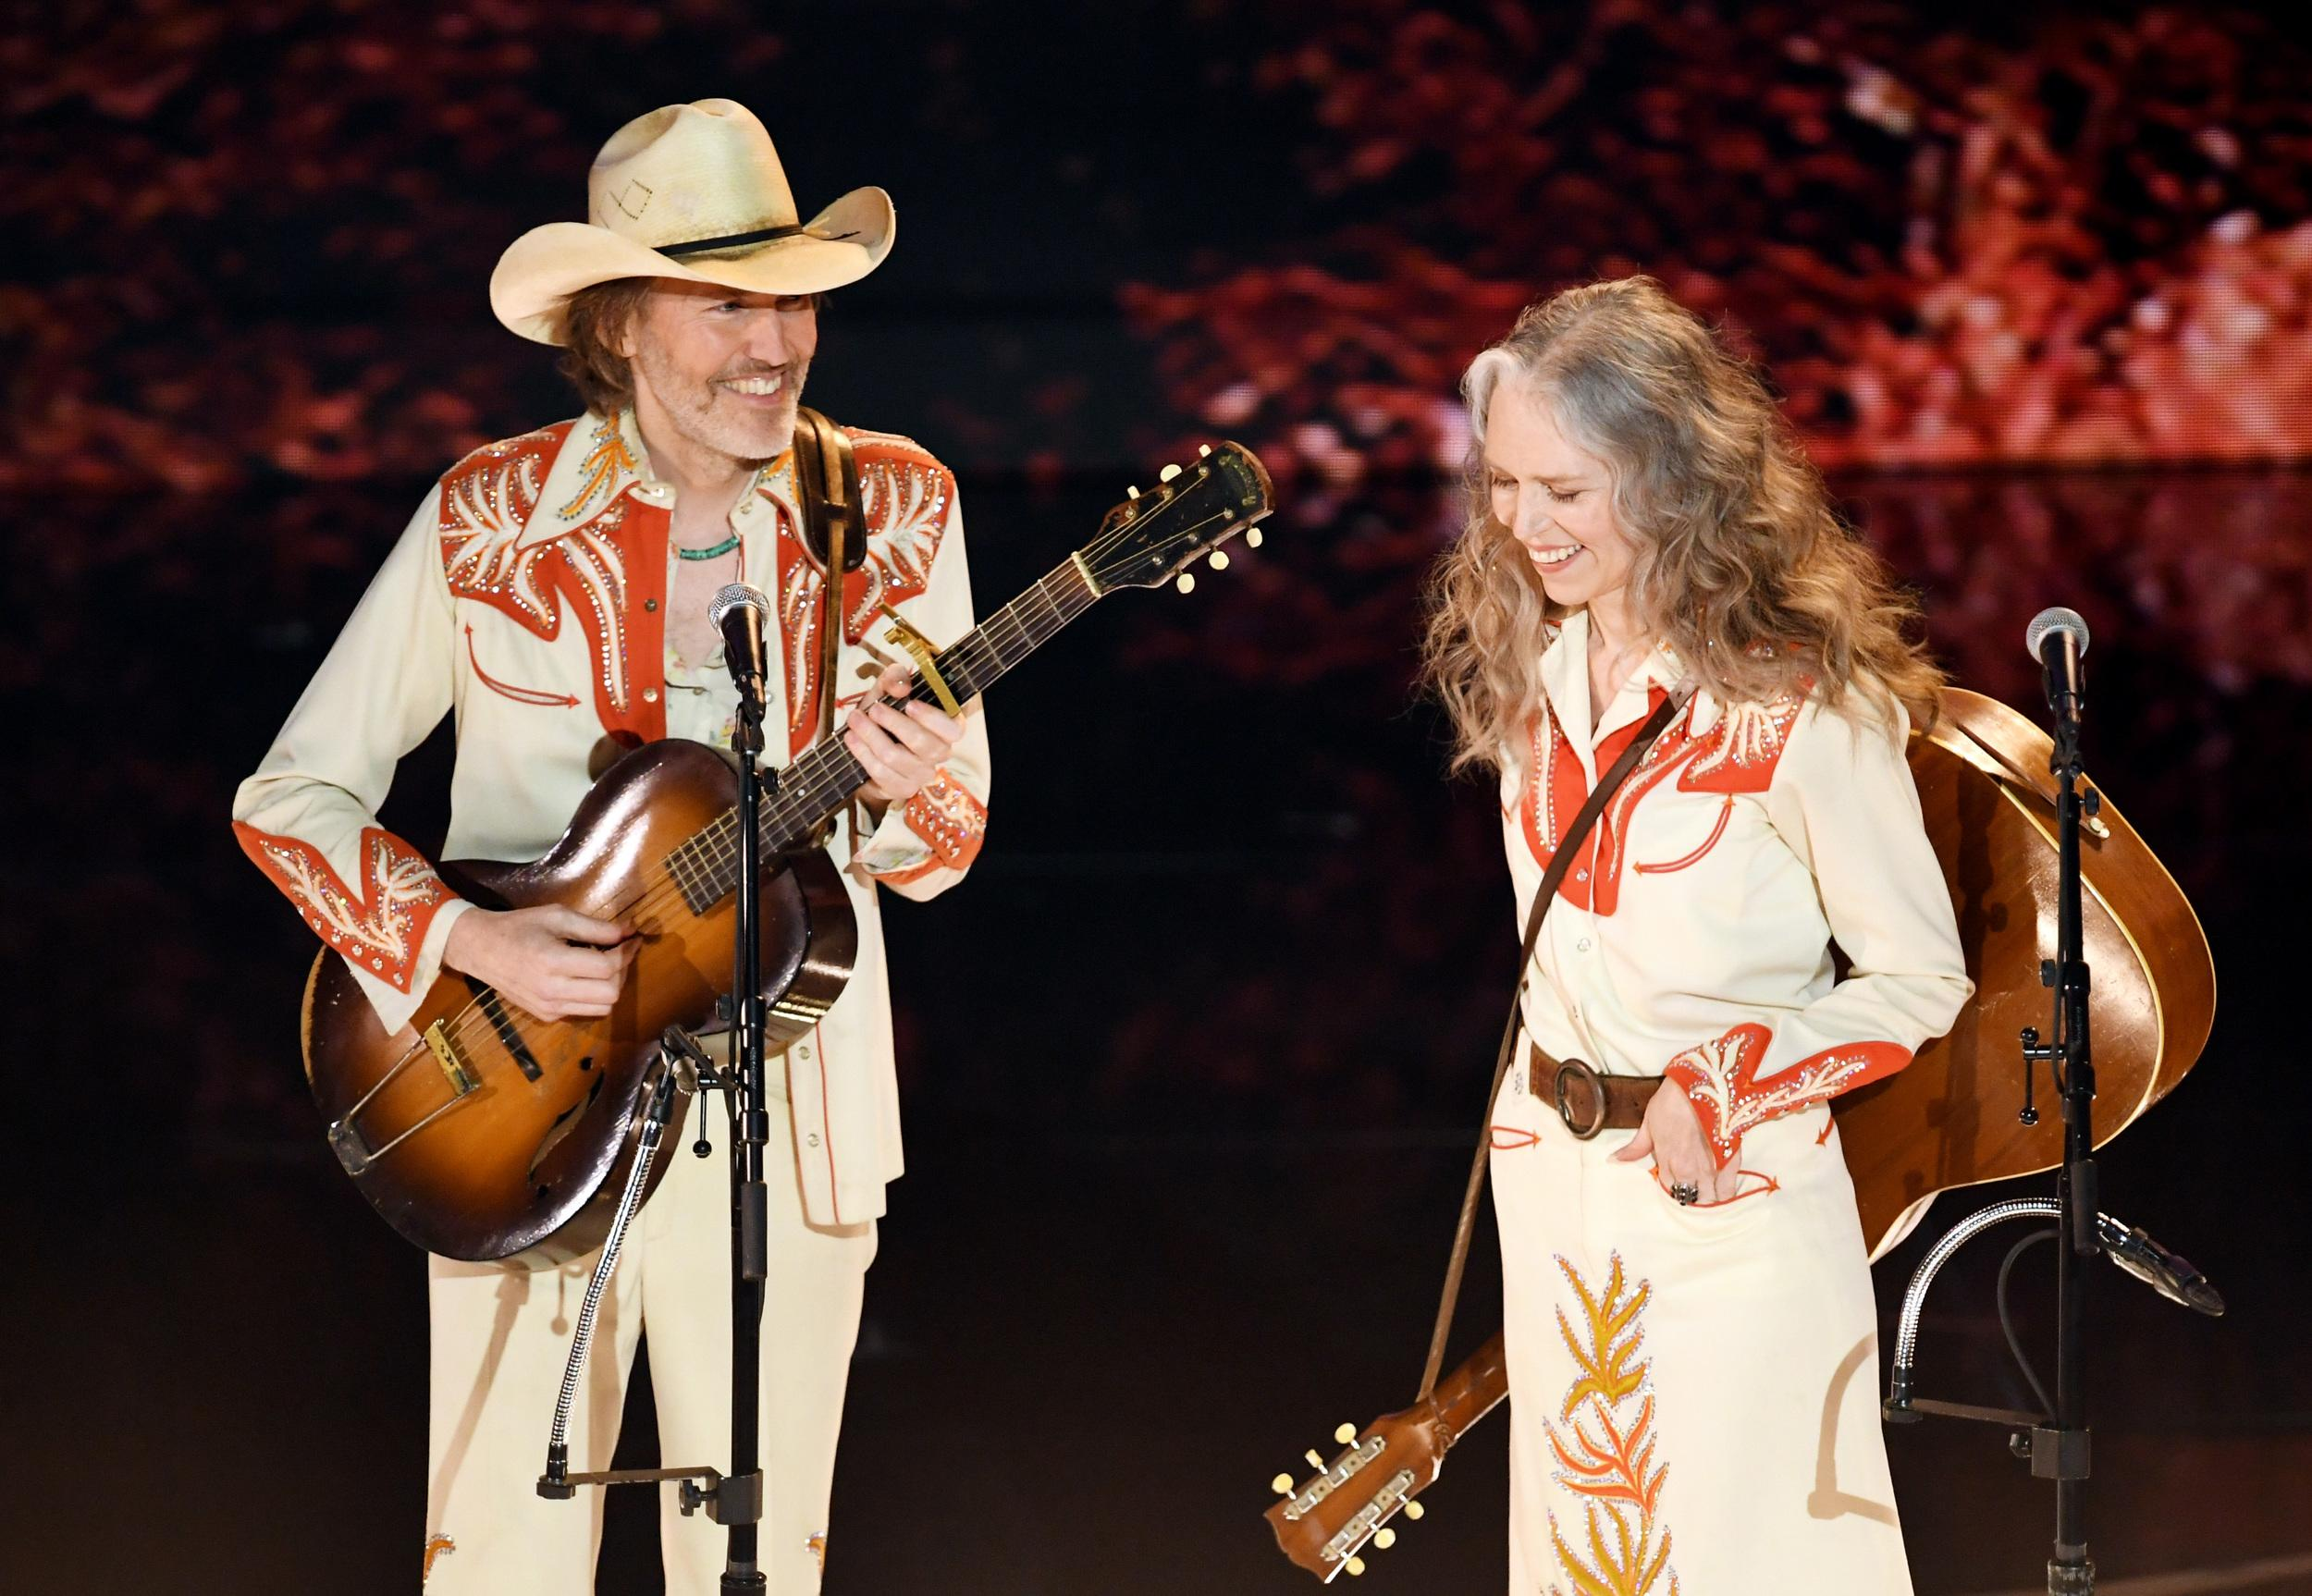 HOLLYWOOD, CALIFORNIA - FEBRUARY 24: (L-R) David Rawlings and Gillian Welch perform onstage during the 91st Annual Academy Awards at Dolby Theatre on February 24, 2019 in Hollywood, California. (Photo by Kevin Winter/Getty Images)